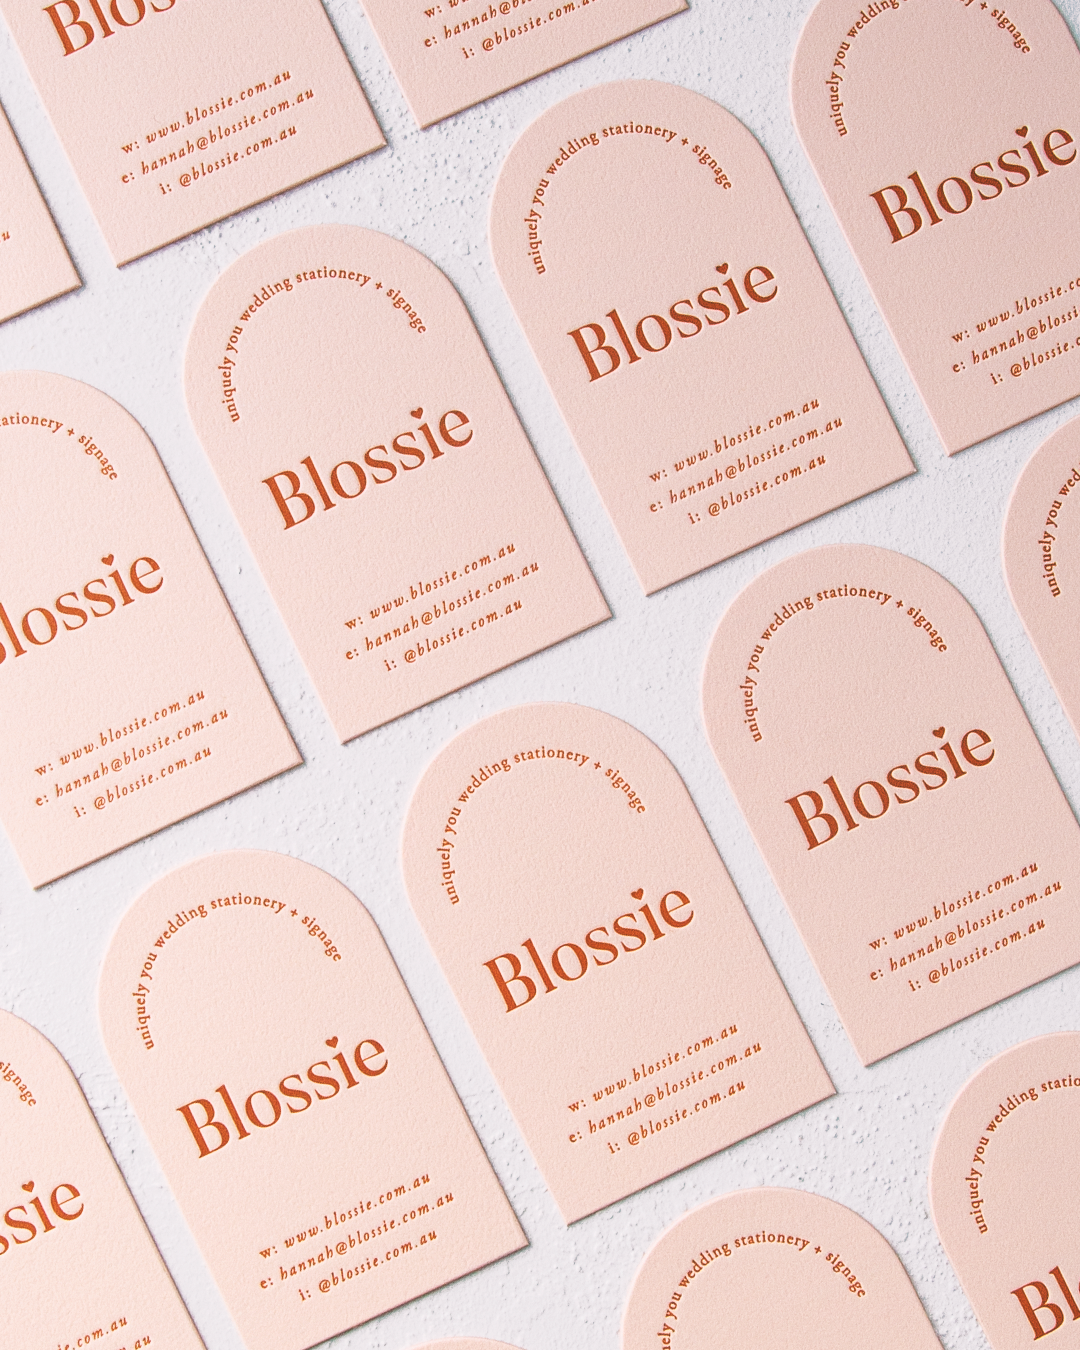 Blossie business cards